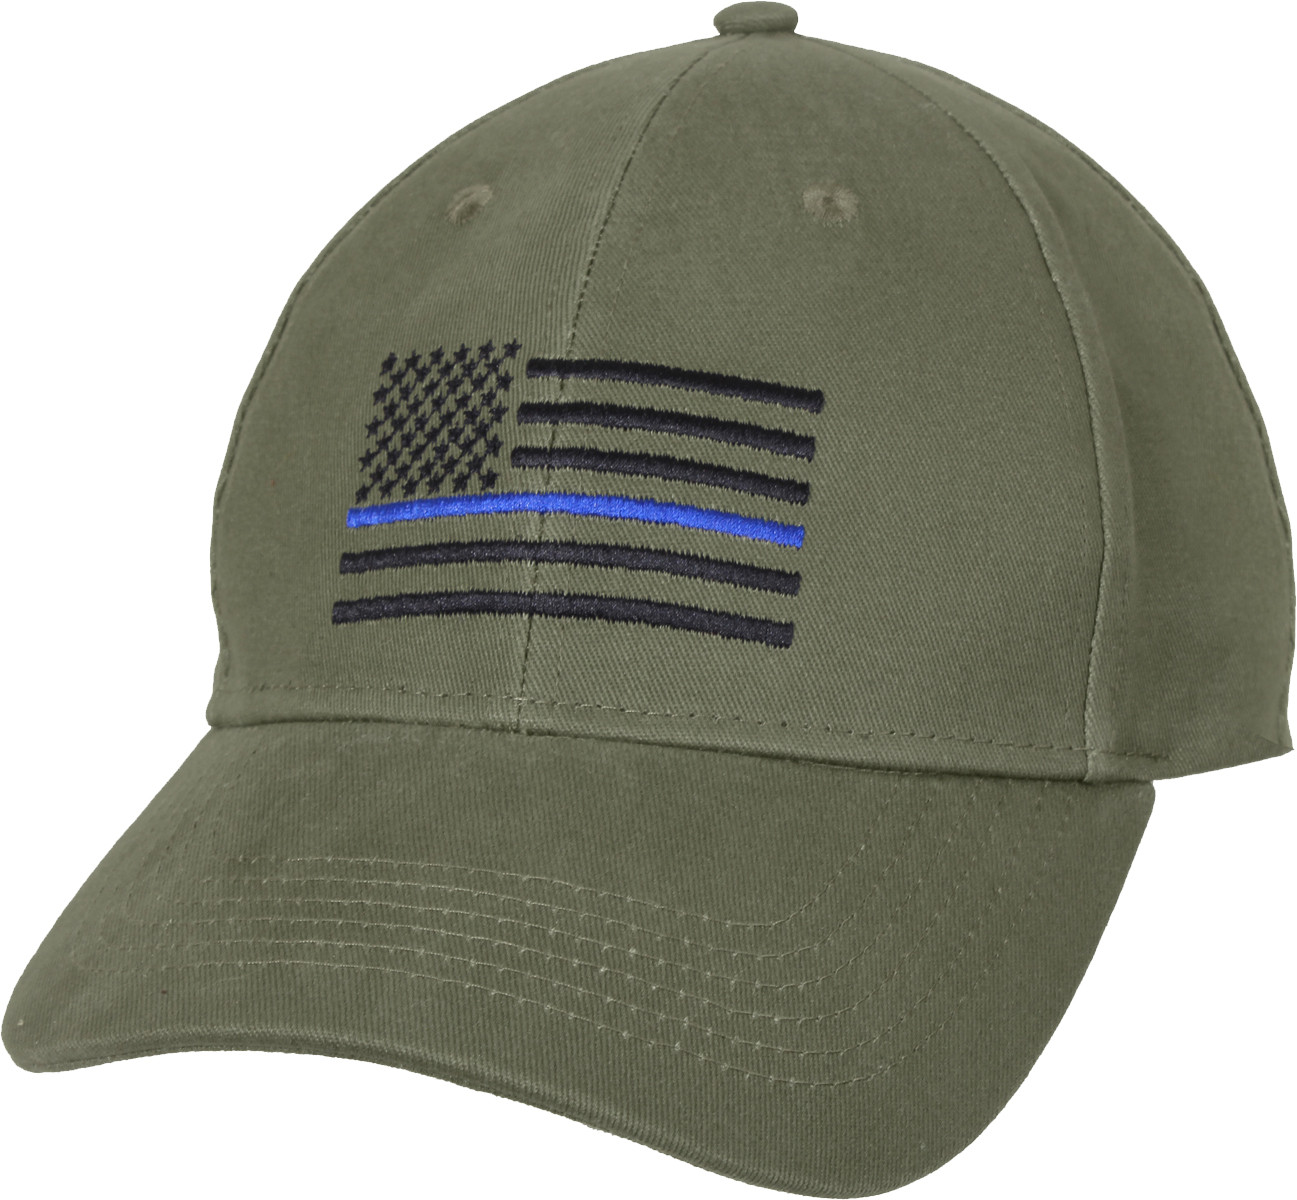 Olive Drab Thin Blue Line American Flag Support The Police Low Profile Cap b8831686a1c